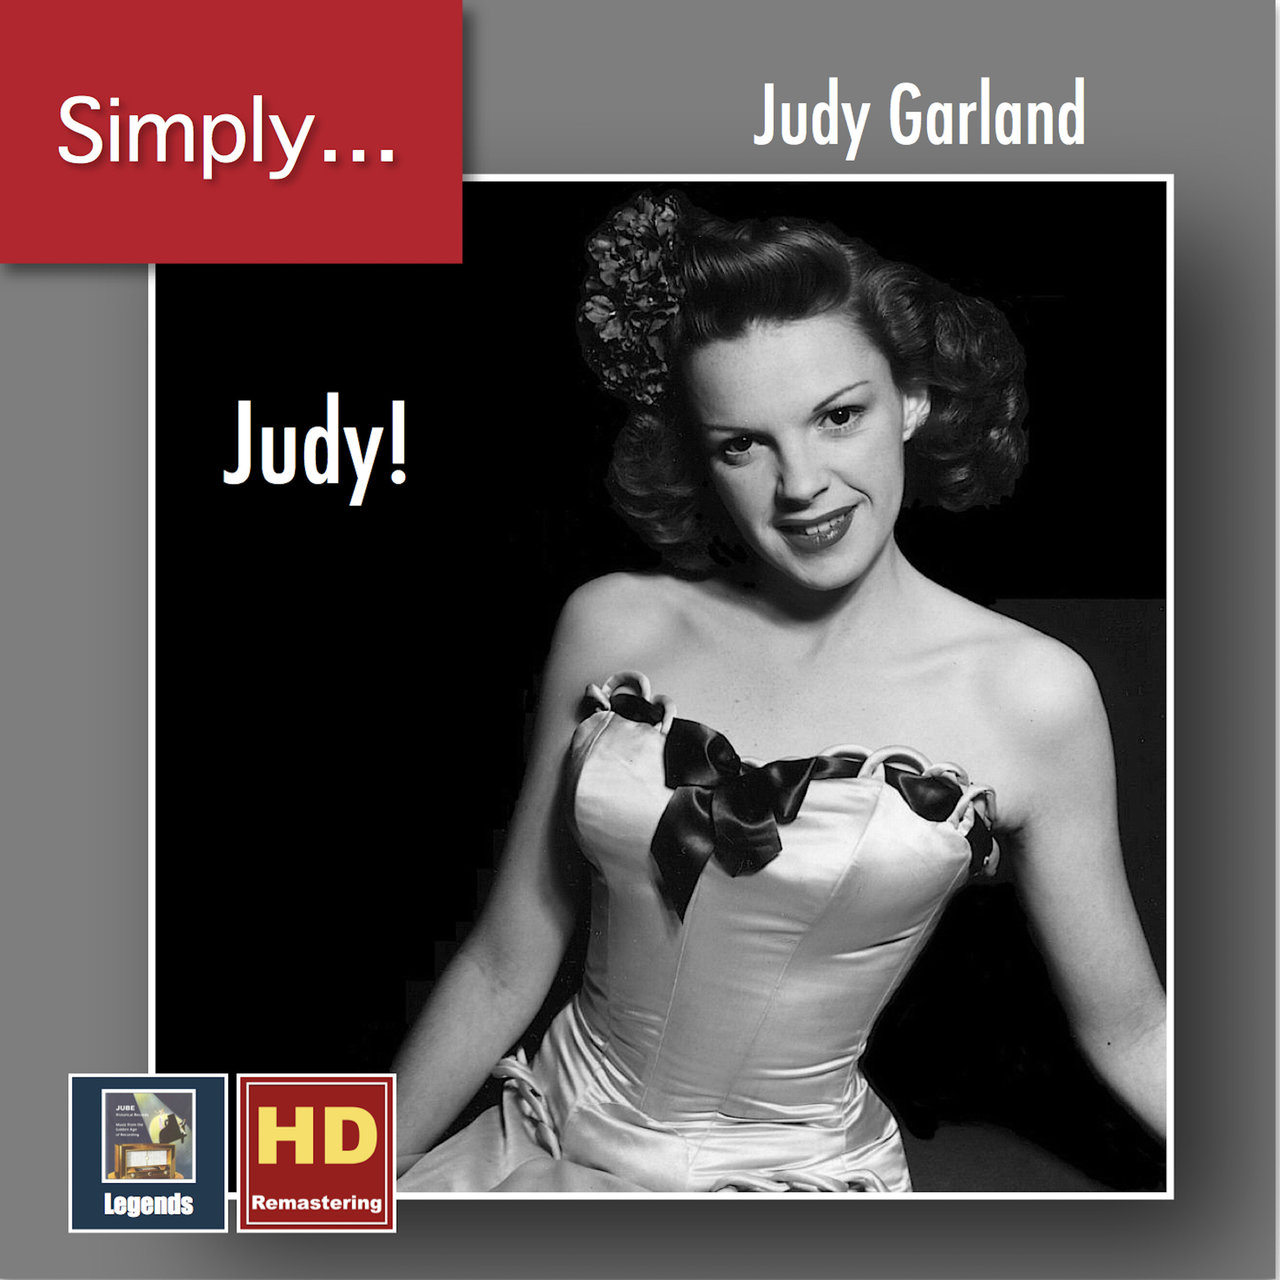 TIDAL: Listen to Judy Garland on TIDAL